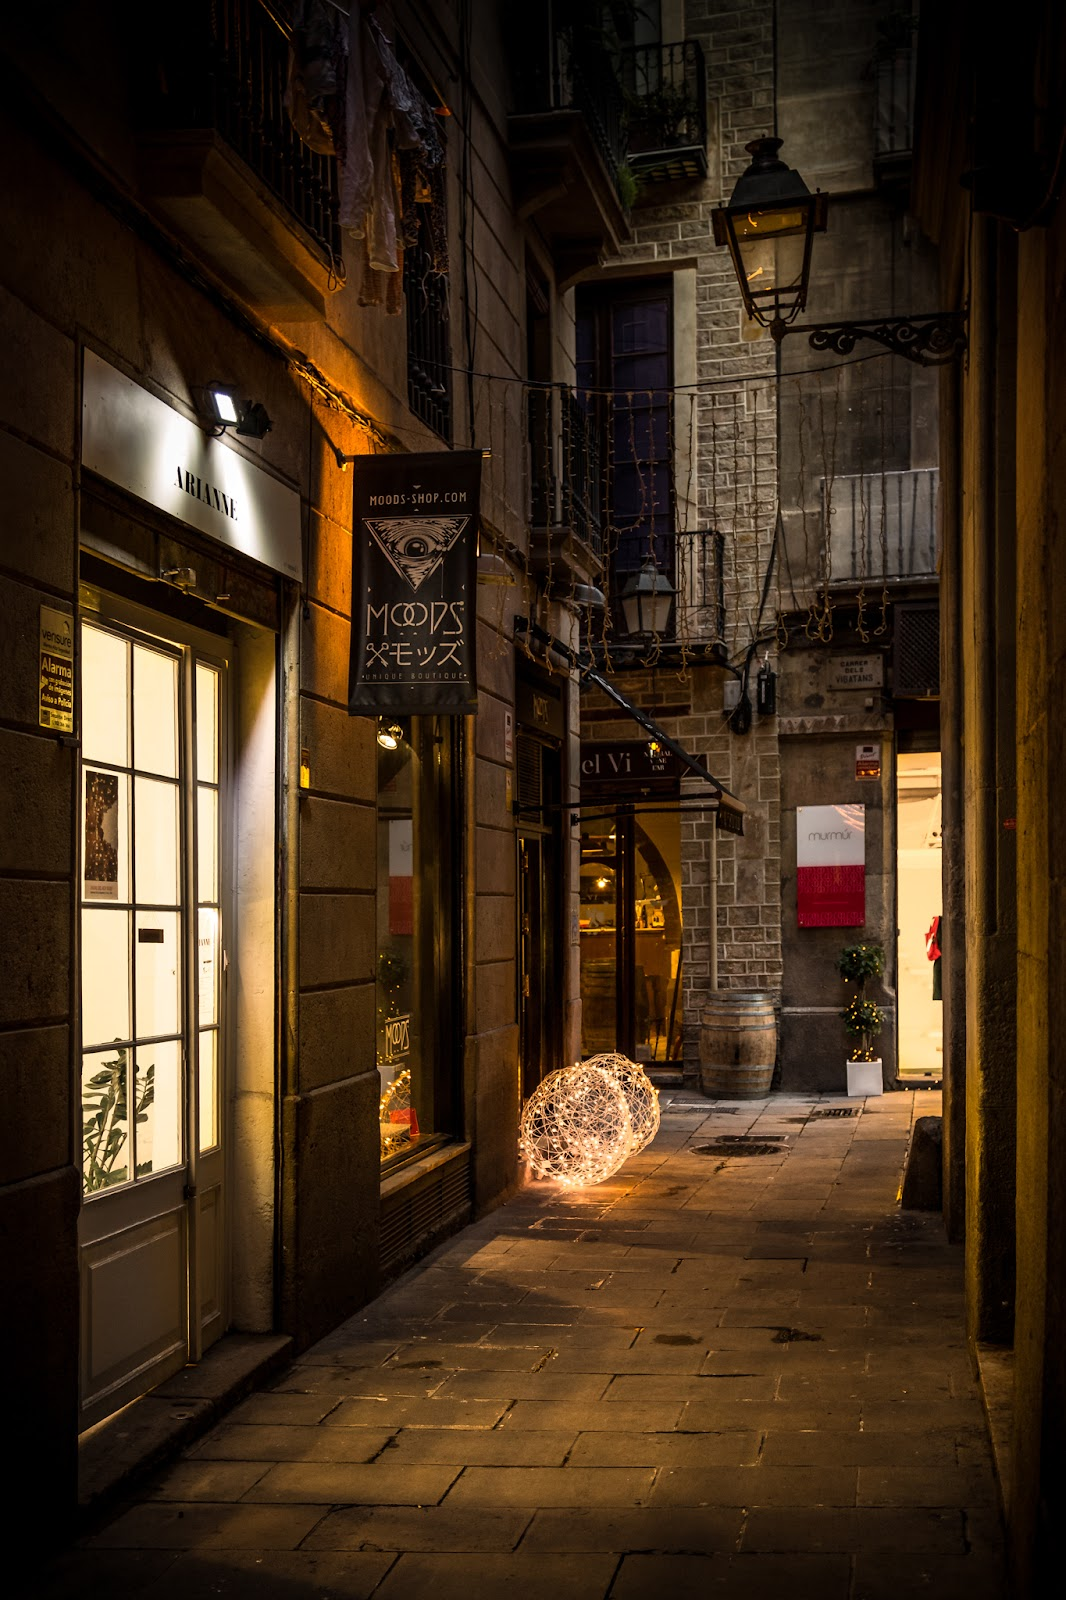 Calle Esquirol :: Canon EOS 5D MkIII | ISO1600 | Canon 24-105 @45mm | f/4.0 | 1/15s